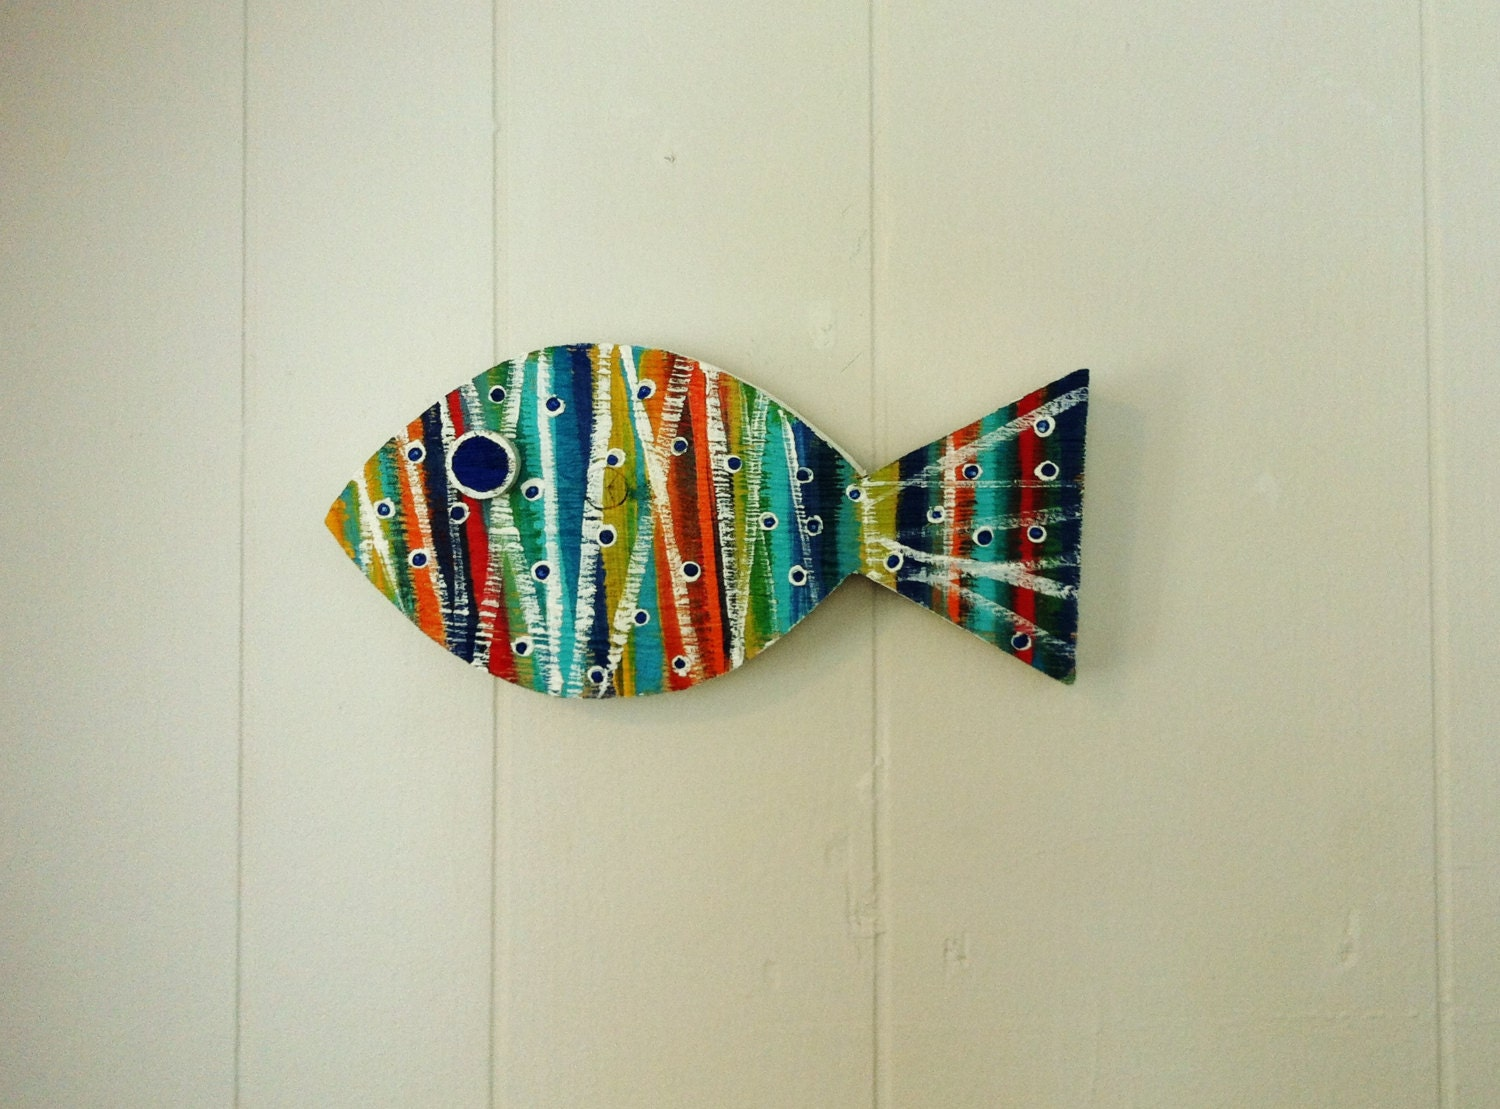 Fish Wall Decor Wood : Wooden fish beach coastal wall hanging decor